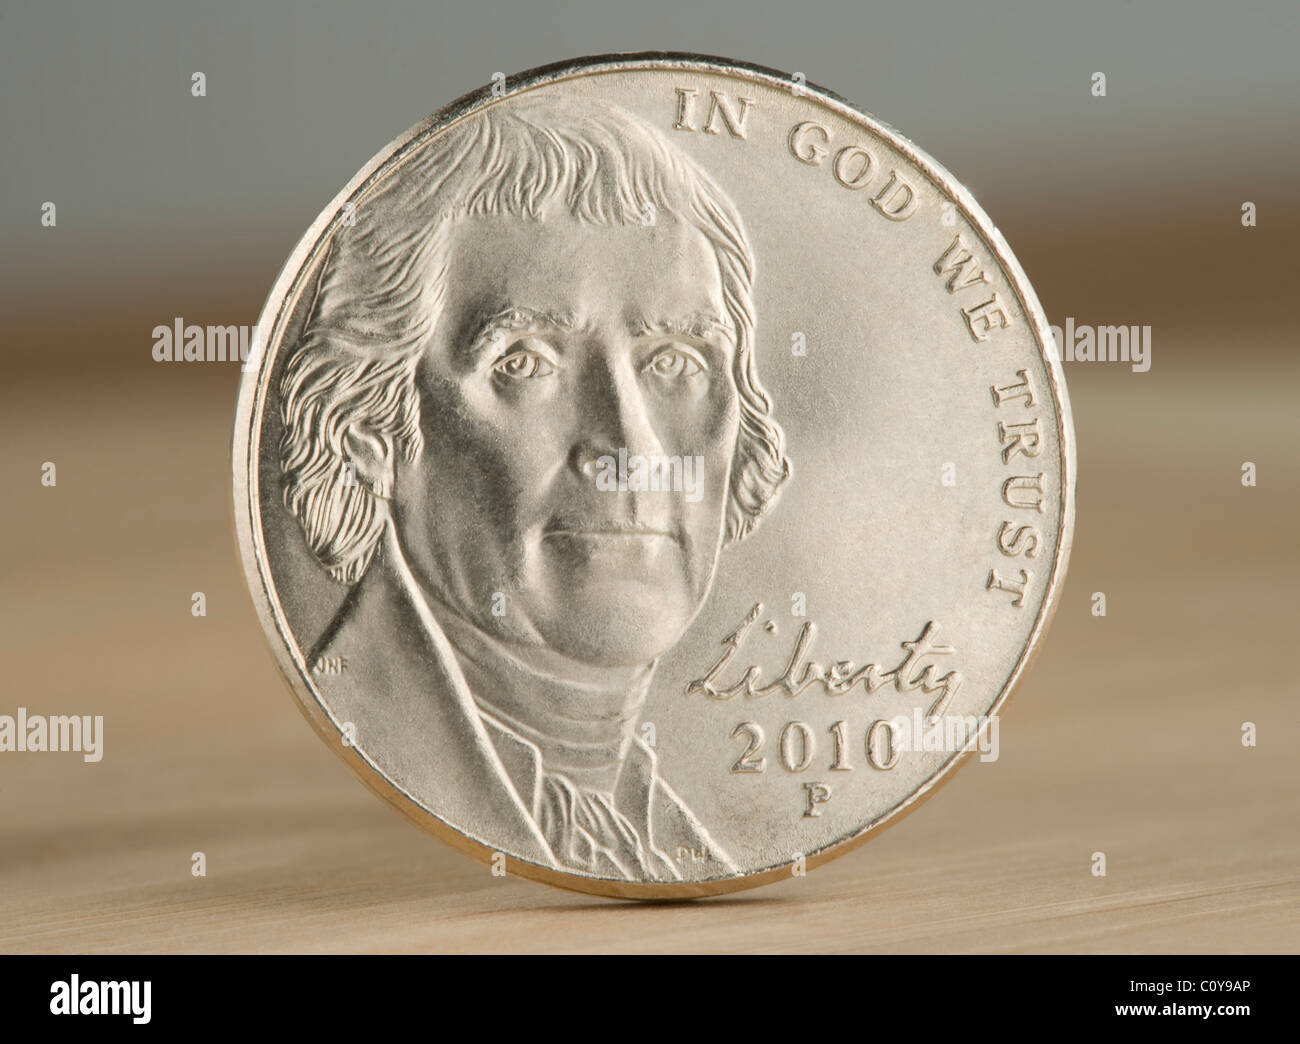 2010 US nickel coin. The face value of 5 cents is now less than the value of the metals in the coin. Stock Photo